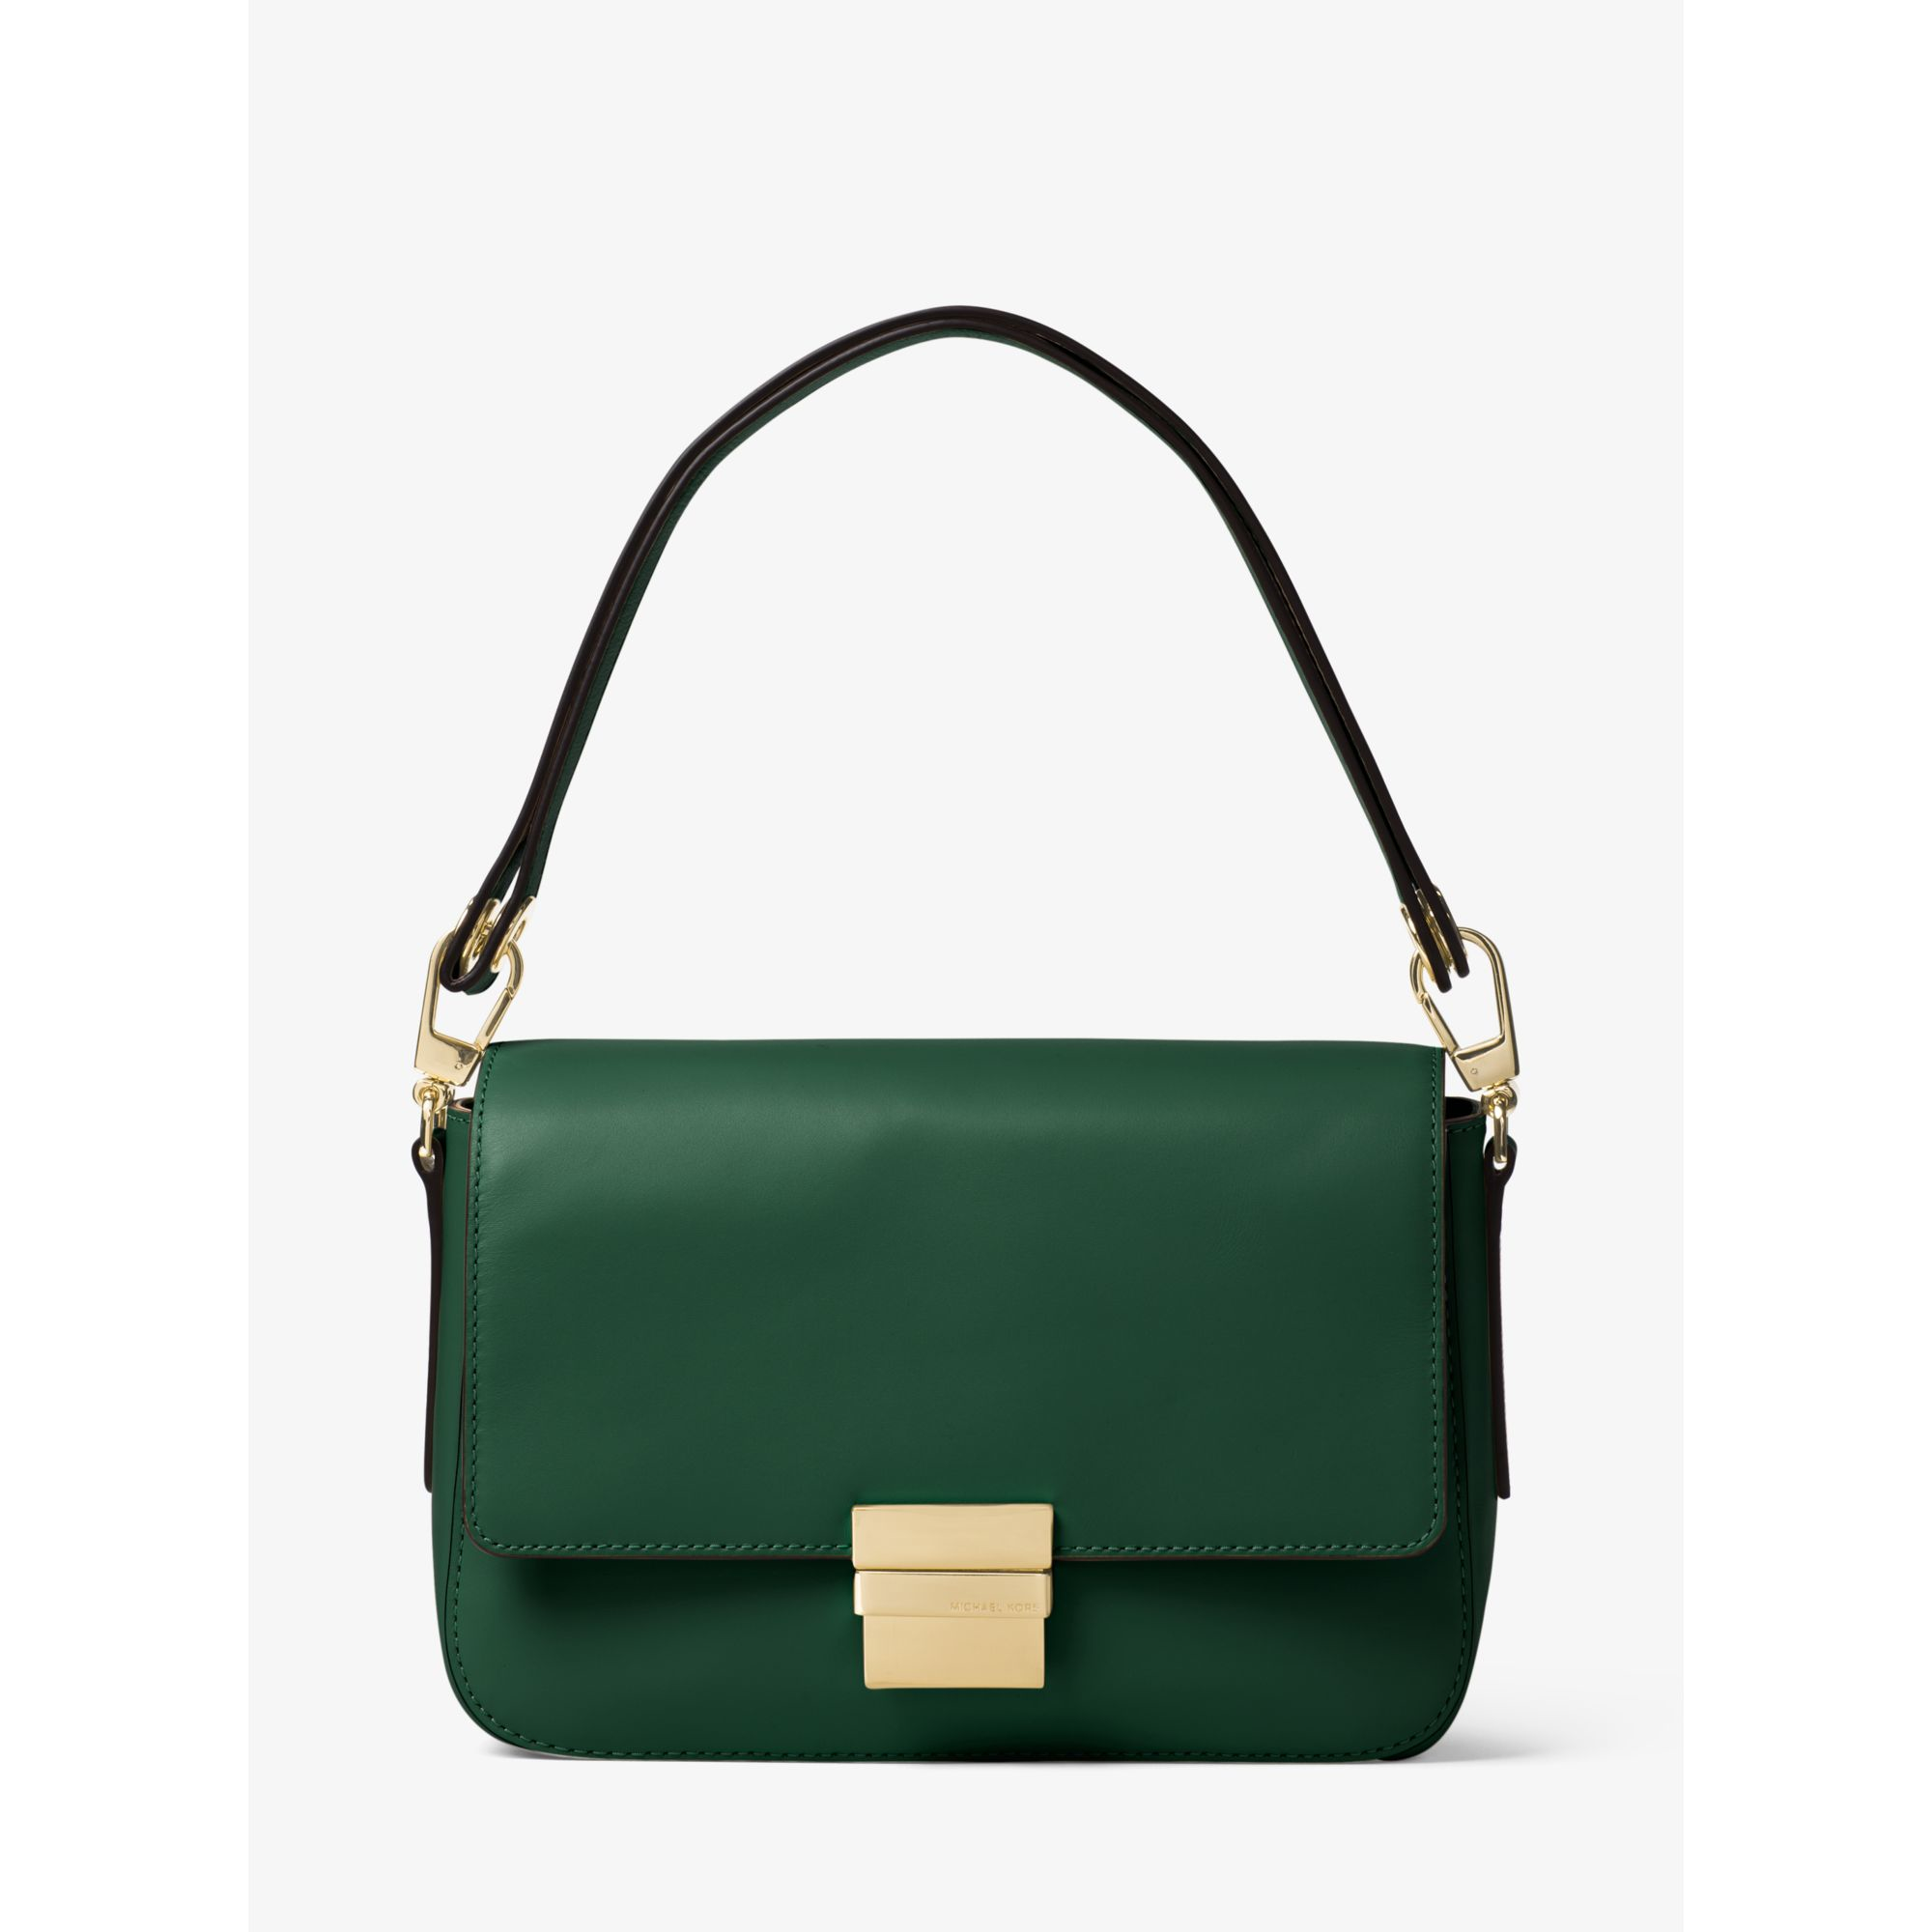 Michael kors Madelyn Large Leather Shoulder Bag in Green | Lyst